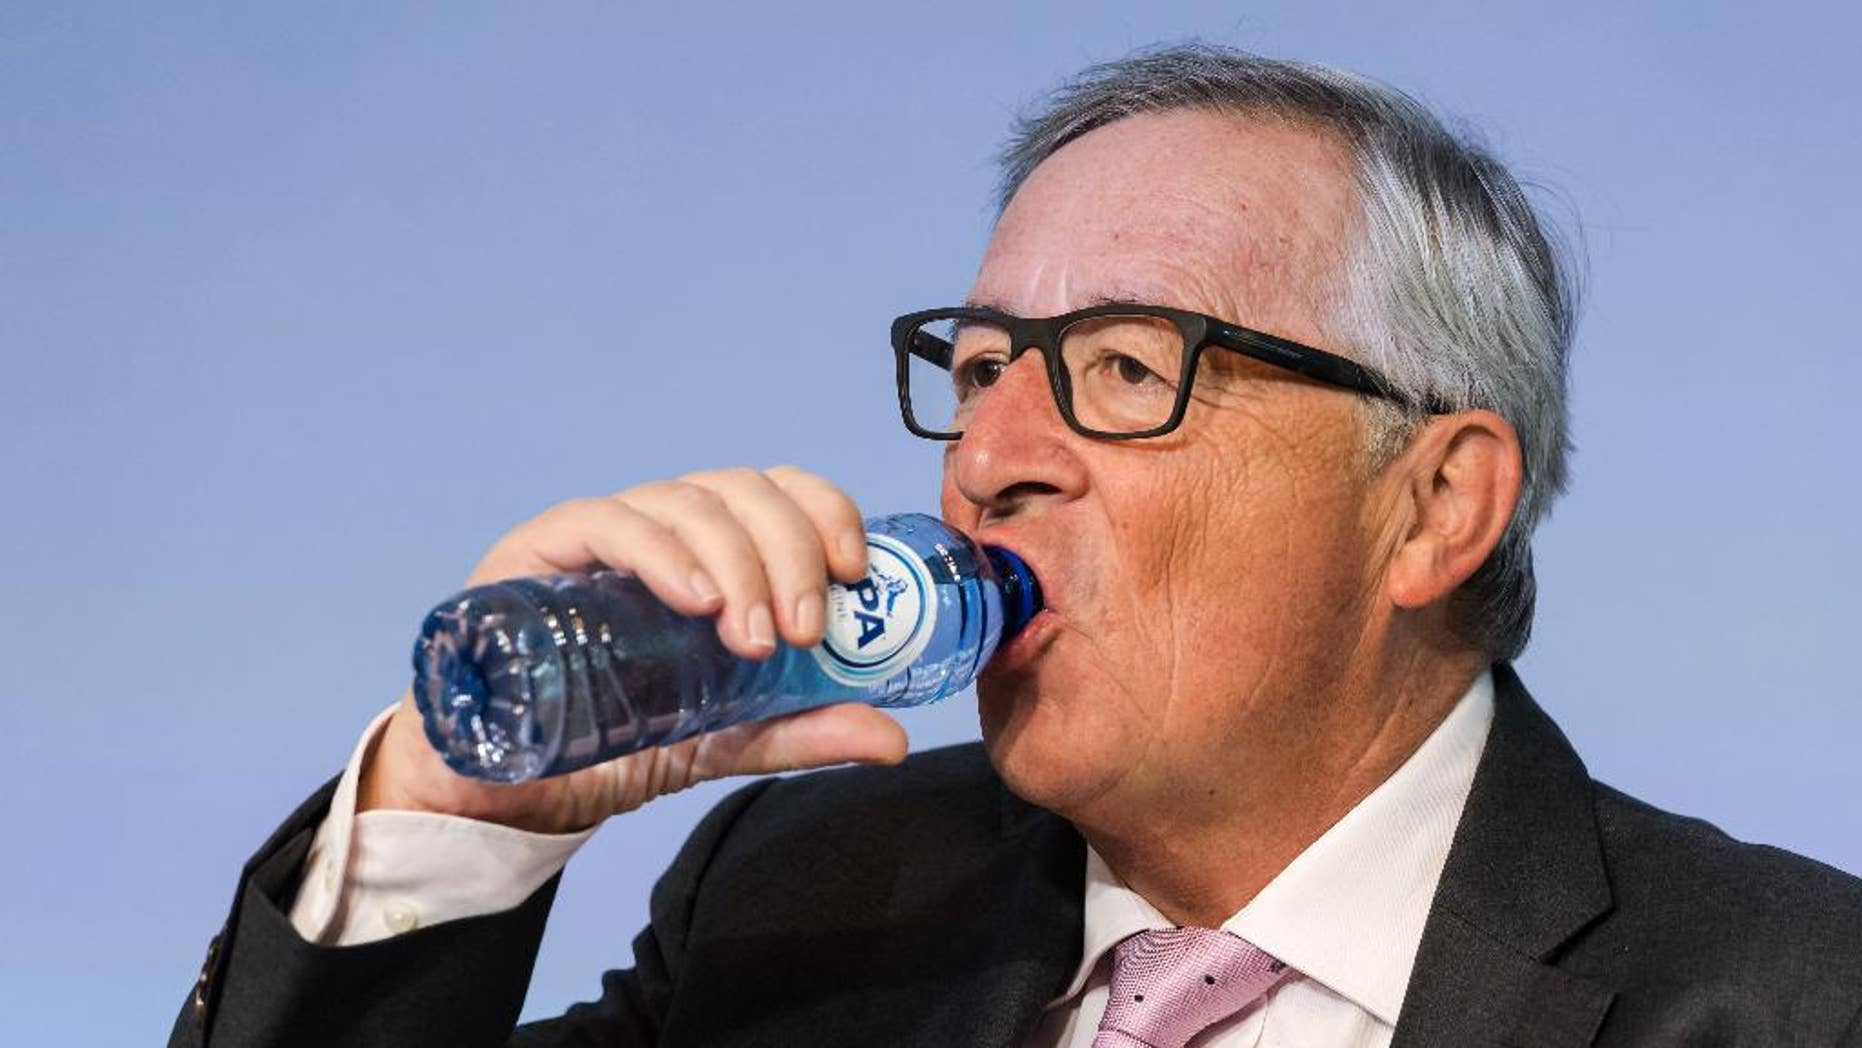 European Commission President Jean-Claude Juncker drinks water as he attends a plenary session of European Economic and Social Committee at the EU Charlemagne building in Brussels Thursday, Sept. 22, 2016. (AP Photo/Geert Vanden Wijngaert)